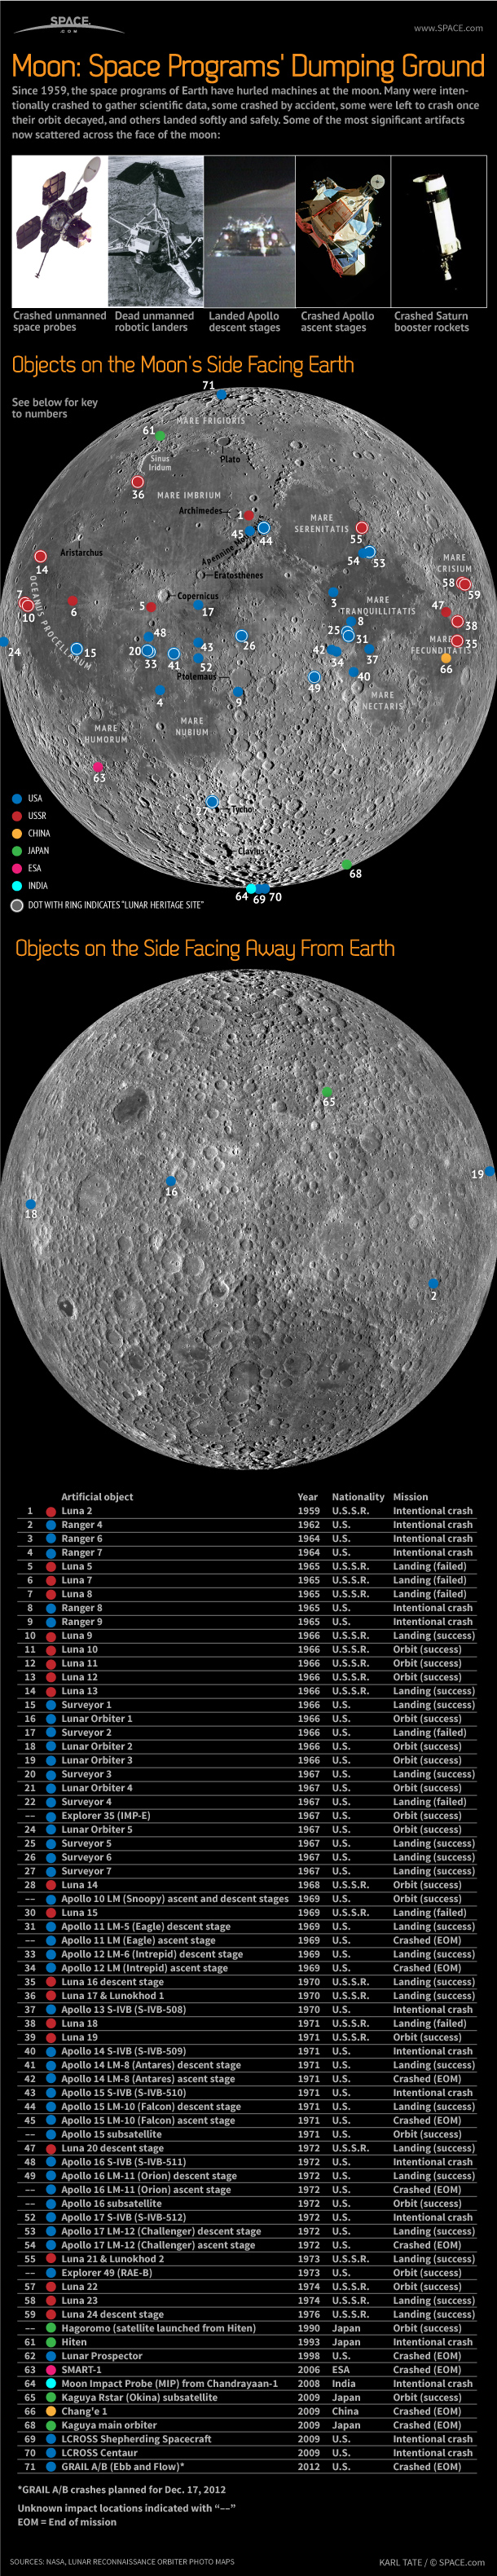 INFOGRAPHIC: Remains and wreckage from 71 space vehicles litter the surface of the moon